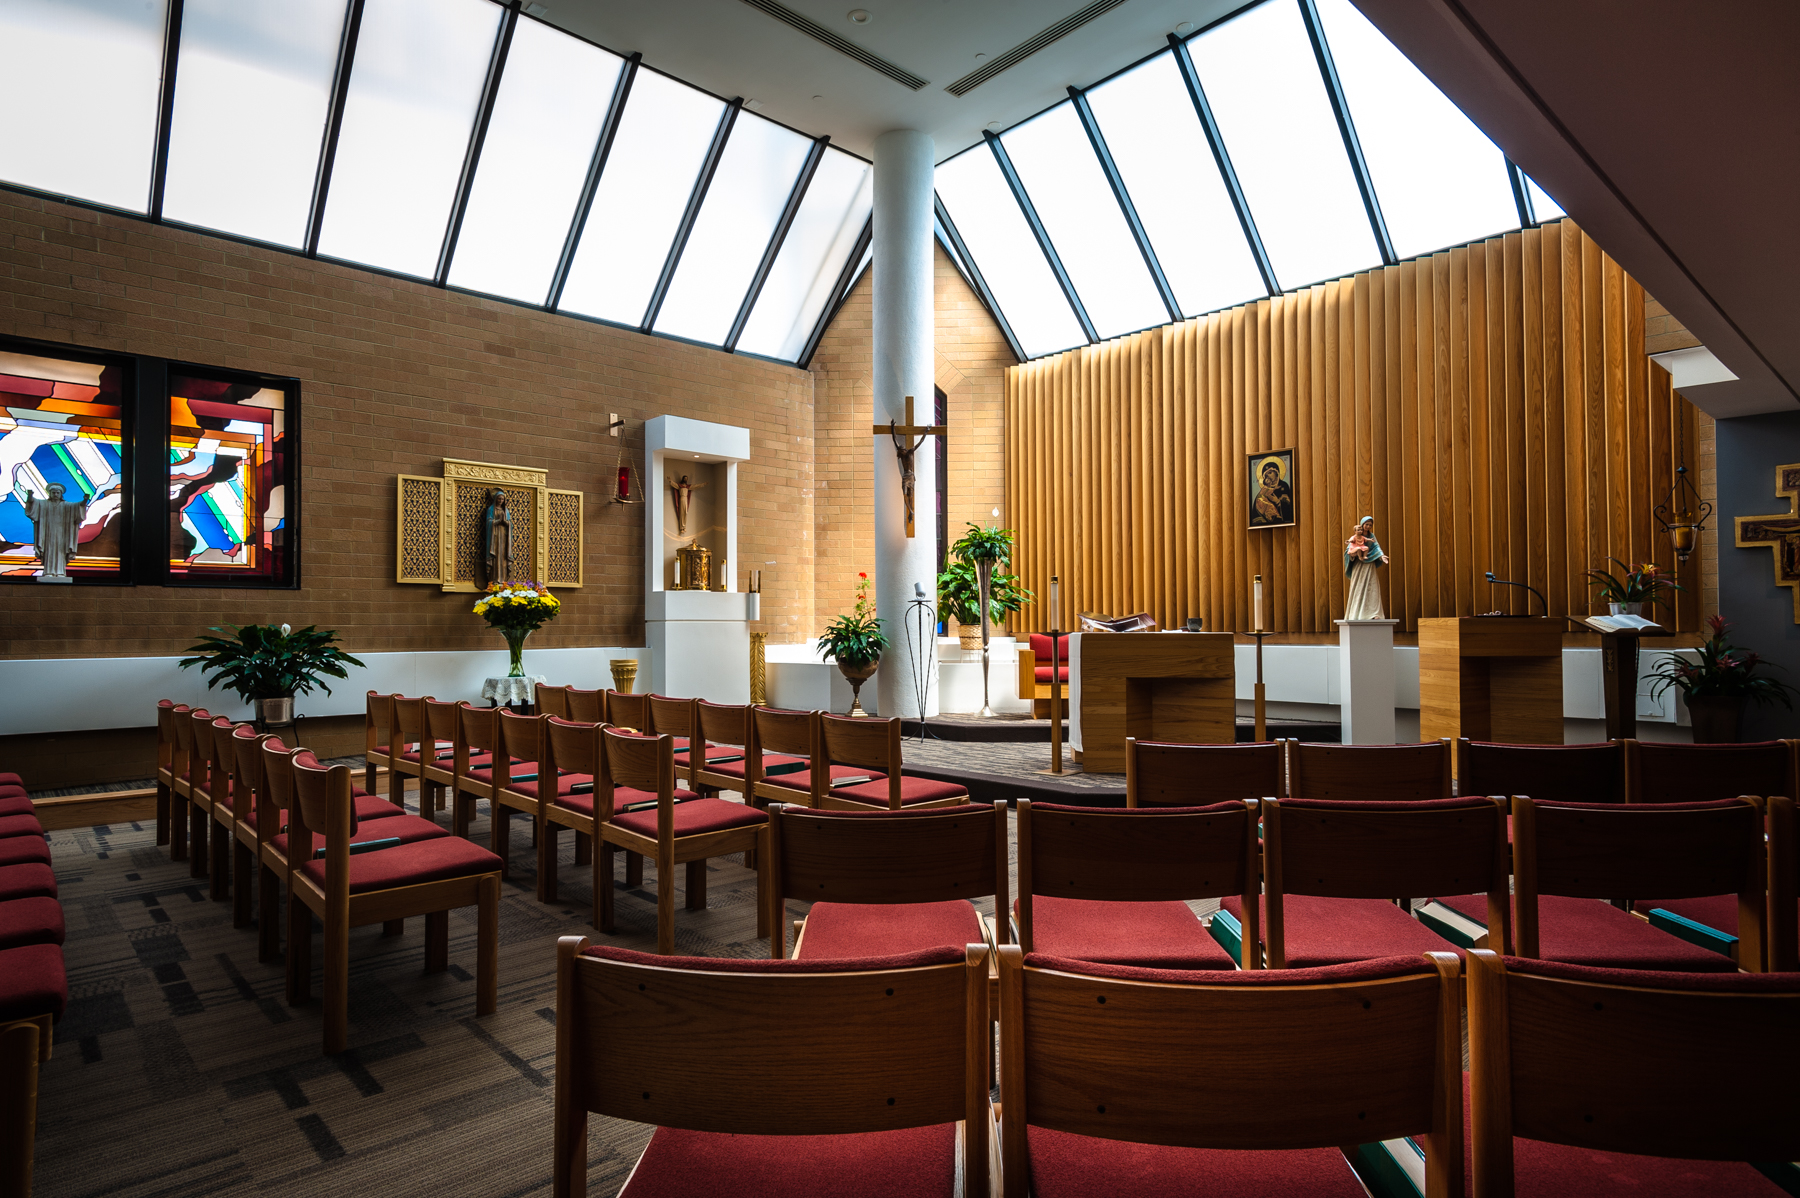 The main chapel